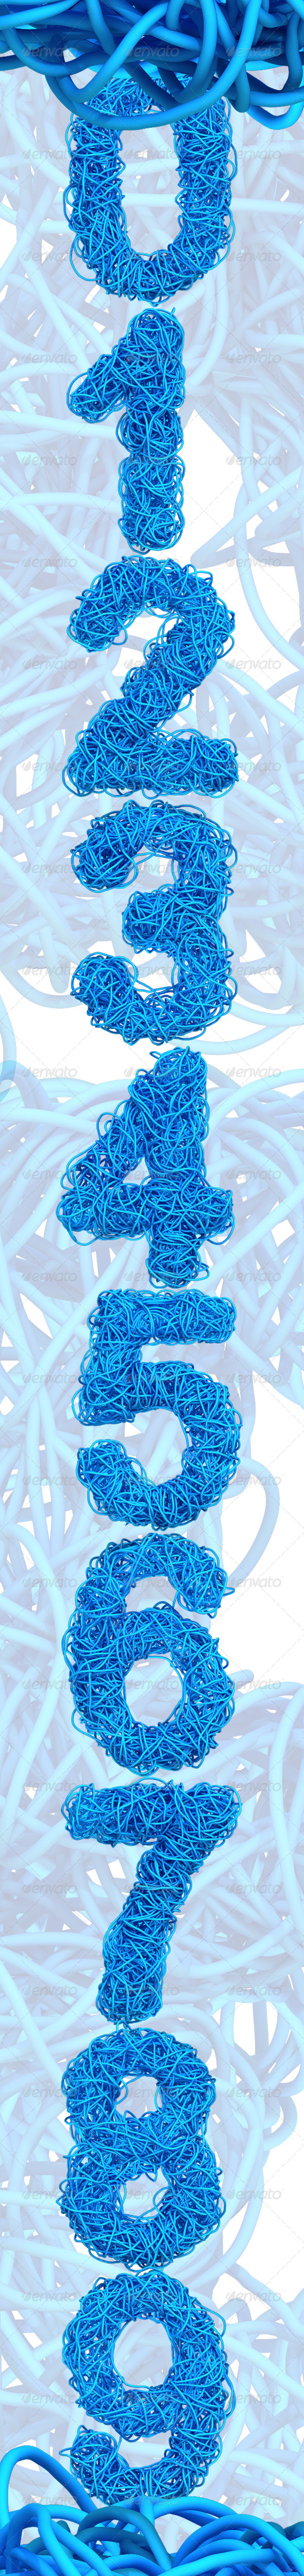 Blue Cable Number - Text 3D Renders